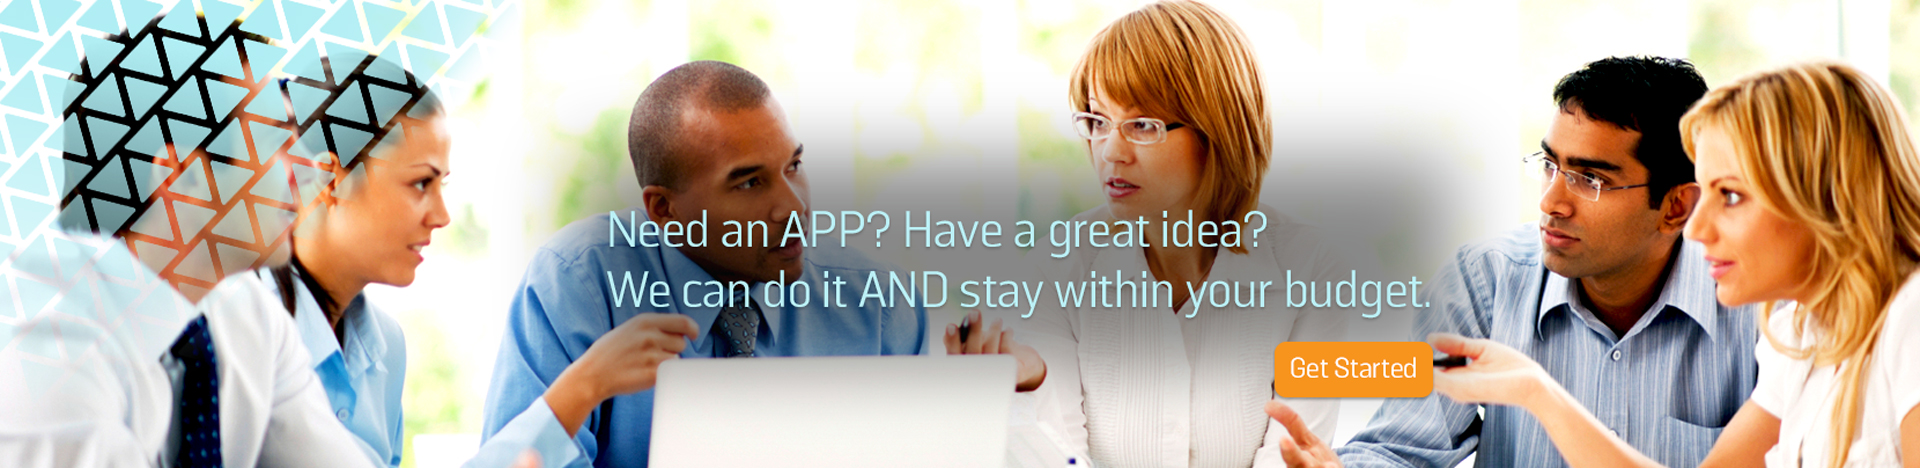 Need an App? Have a great idea? We can do it.